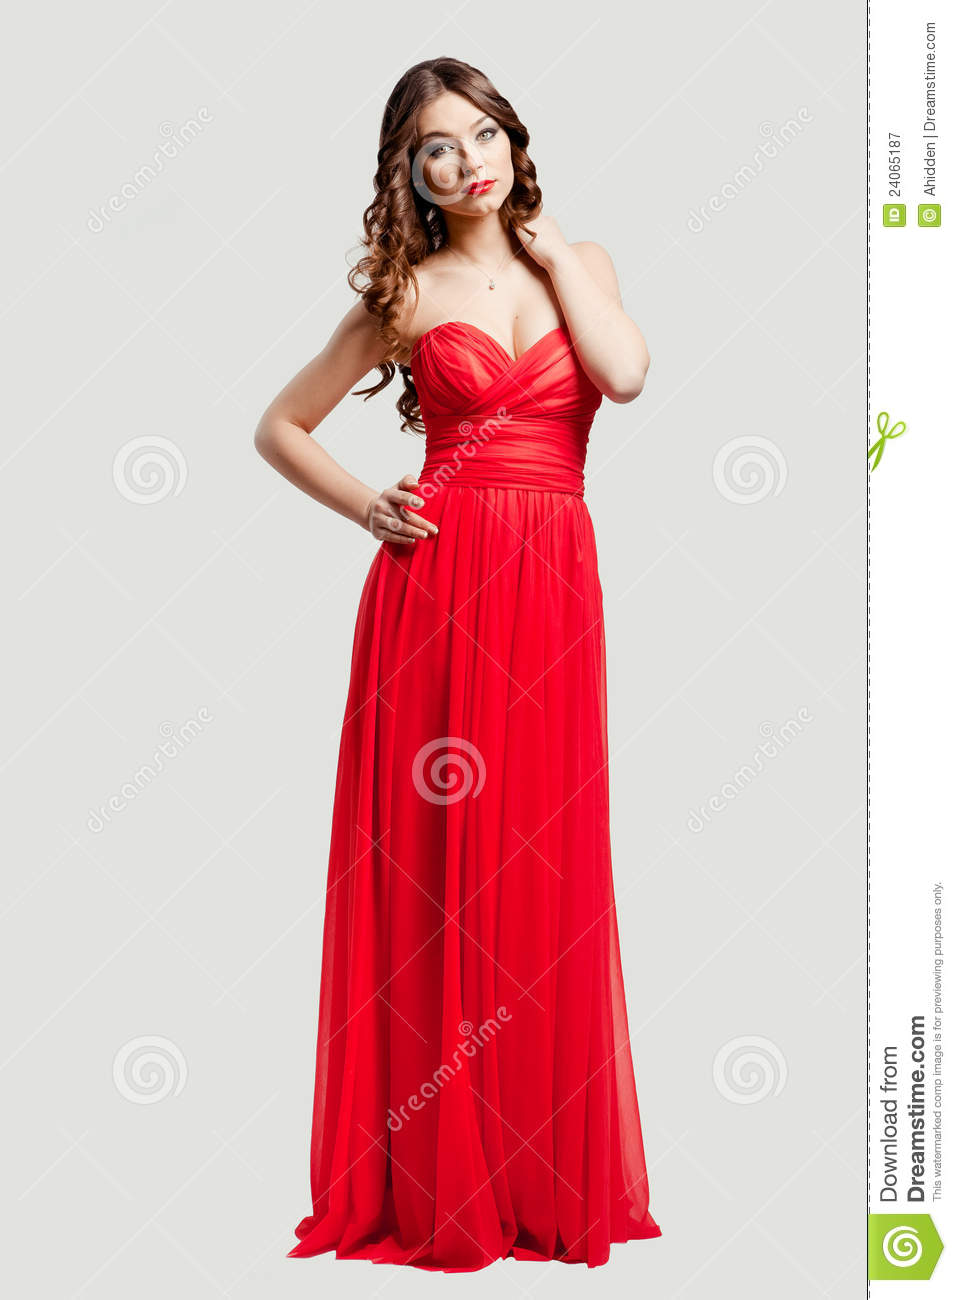 Beautiful Female Fashion Model In Red Dress Royalty Free